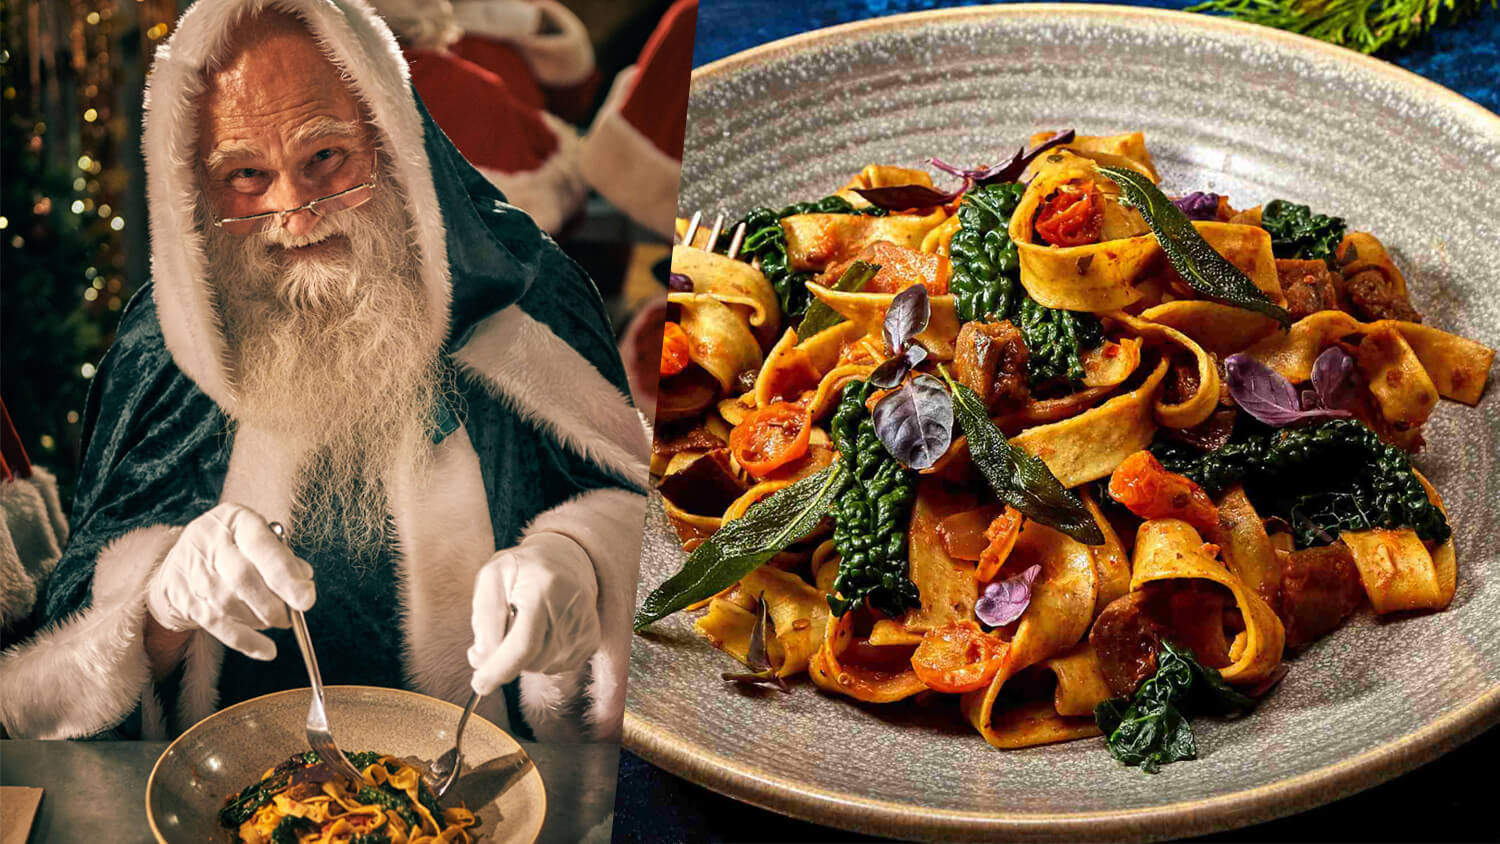 UK Italian Restaurant Chain Zizzi Launches First Christmas Ad Featuring Vegan Santa